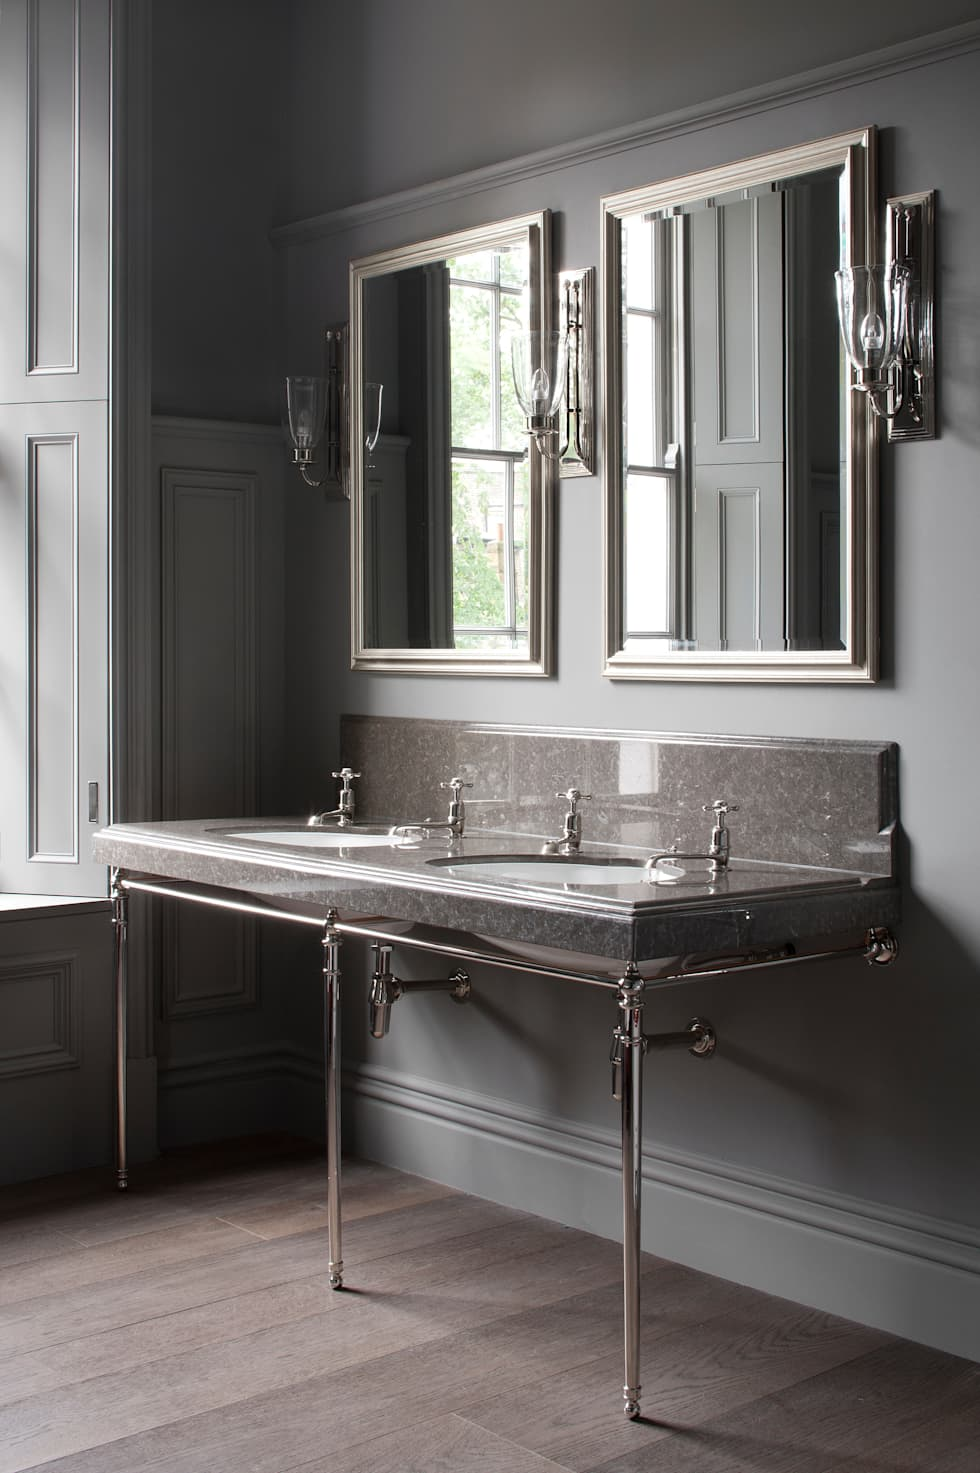 Interior design ideas redecorating remodeling photos for Best bathrooms on the road